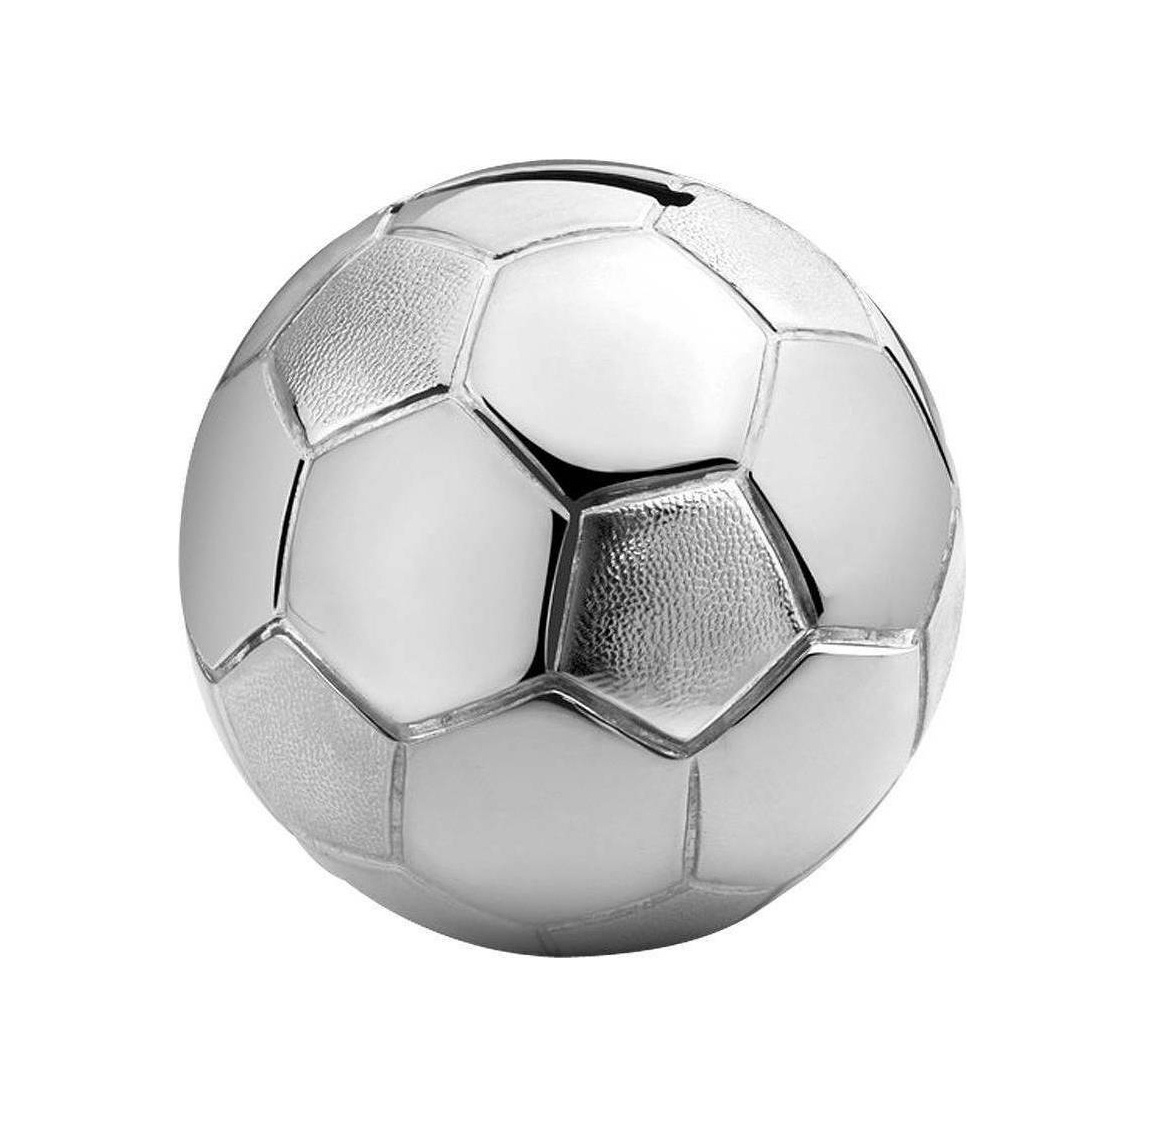 Zilverstad Savings Box Fußball Silver plated,lacquered A6007260 Κουμπαράς Μπάλα